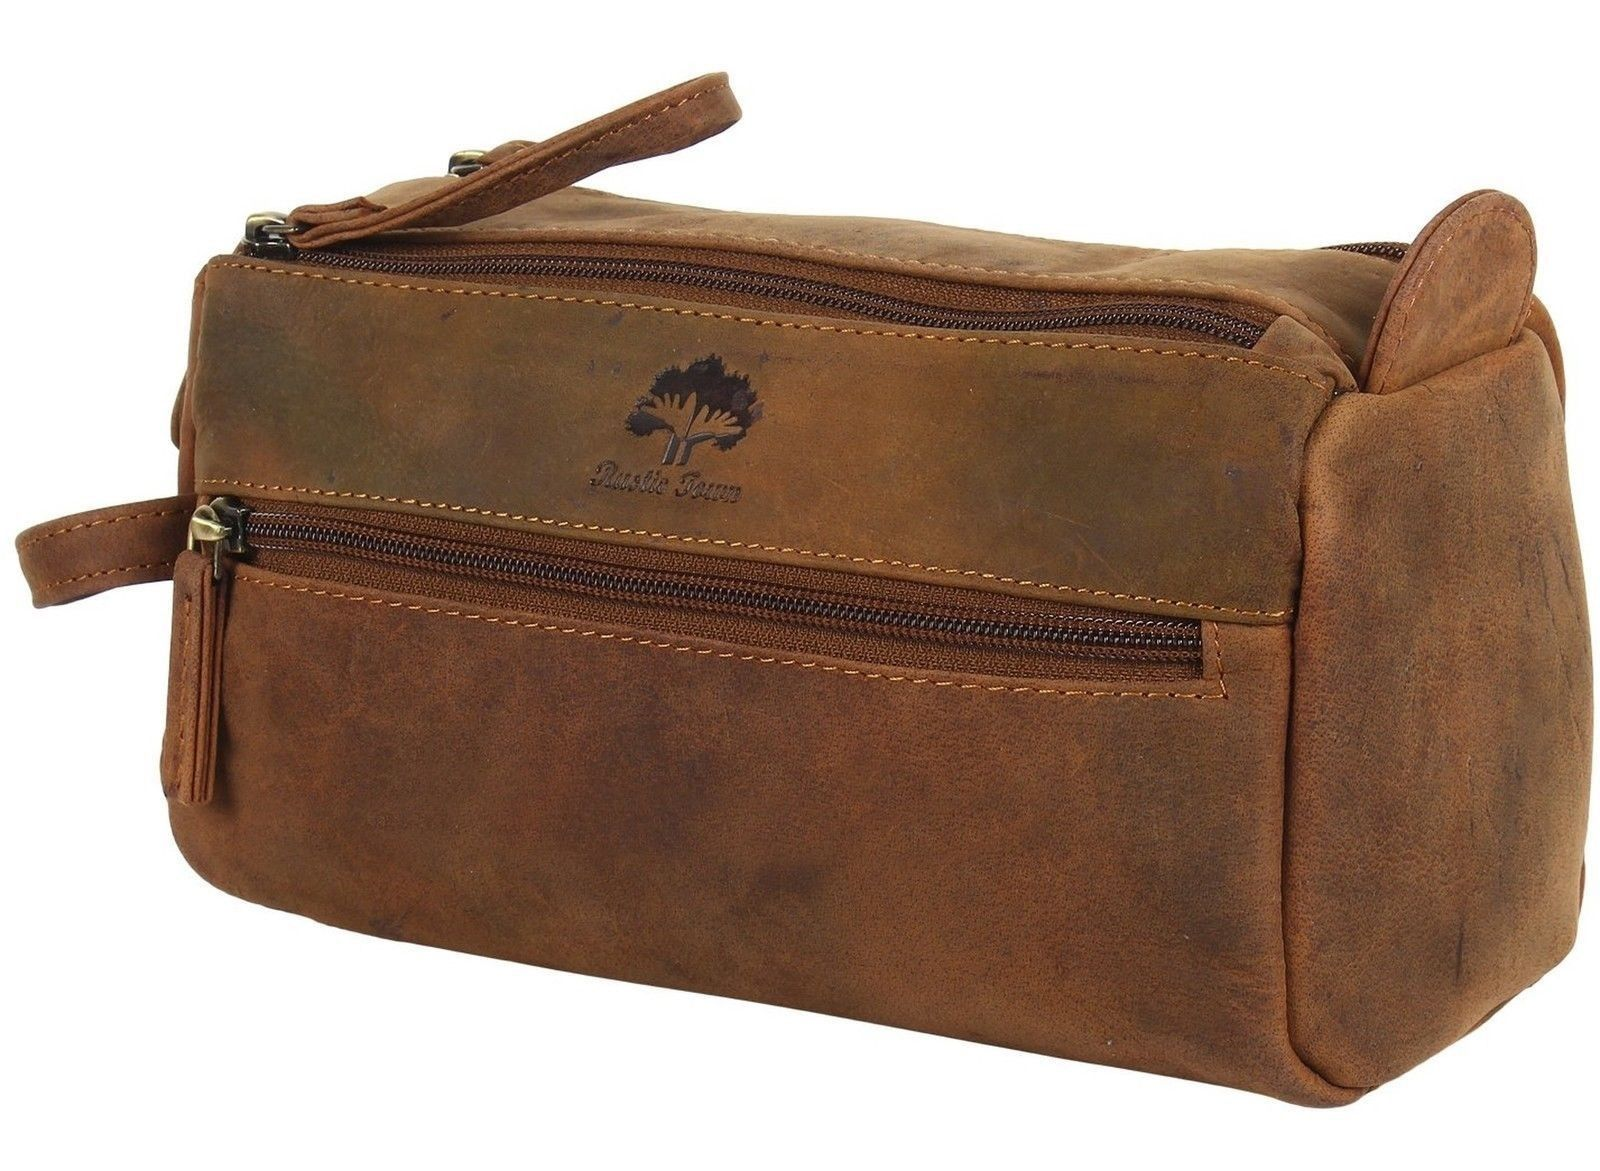 Leather Toiletry Bag travel compact men women sale Leather Dopp Kit Travel  Ki. e20267a404262